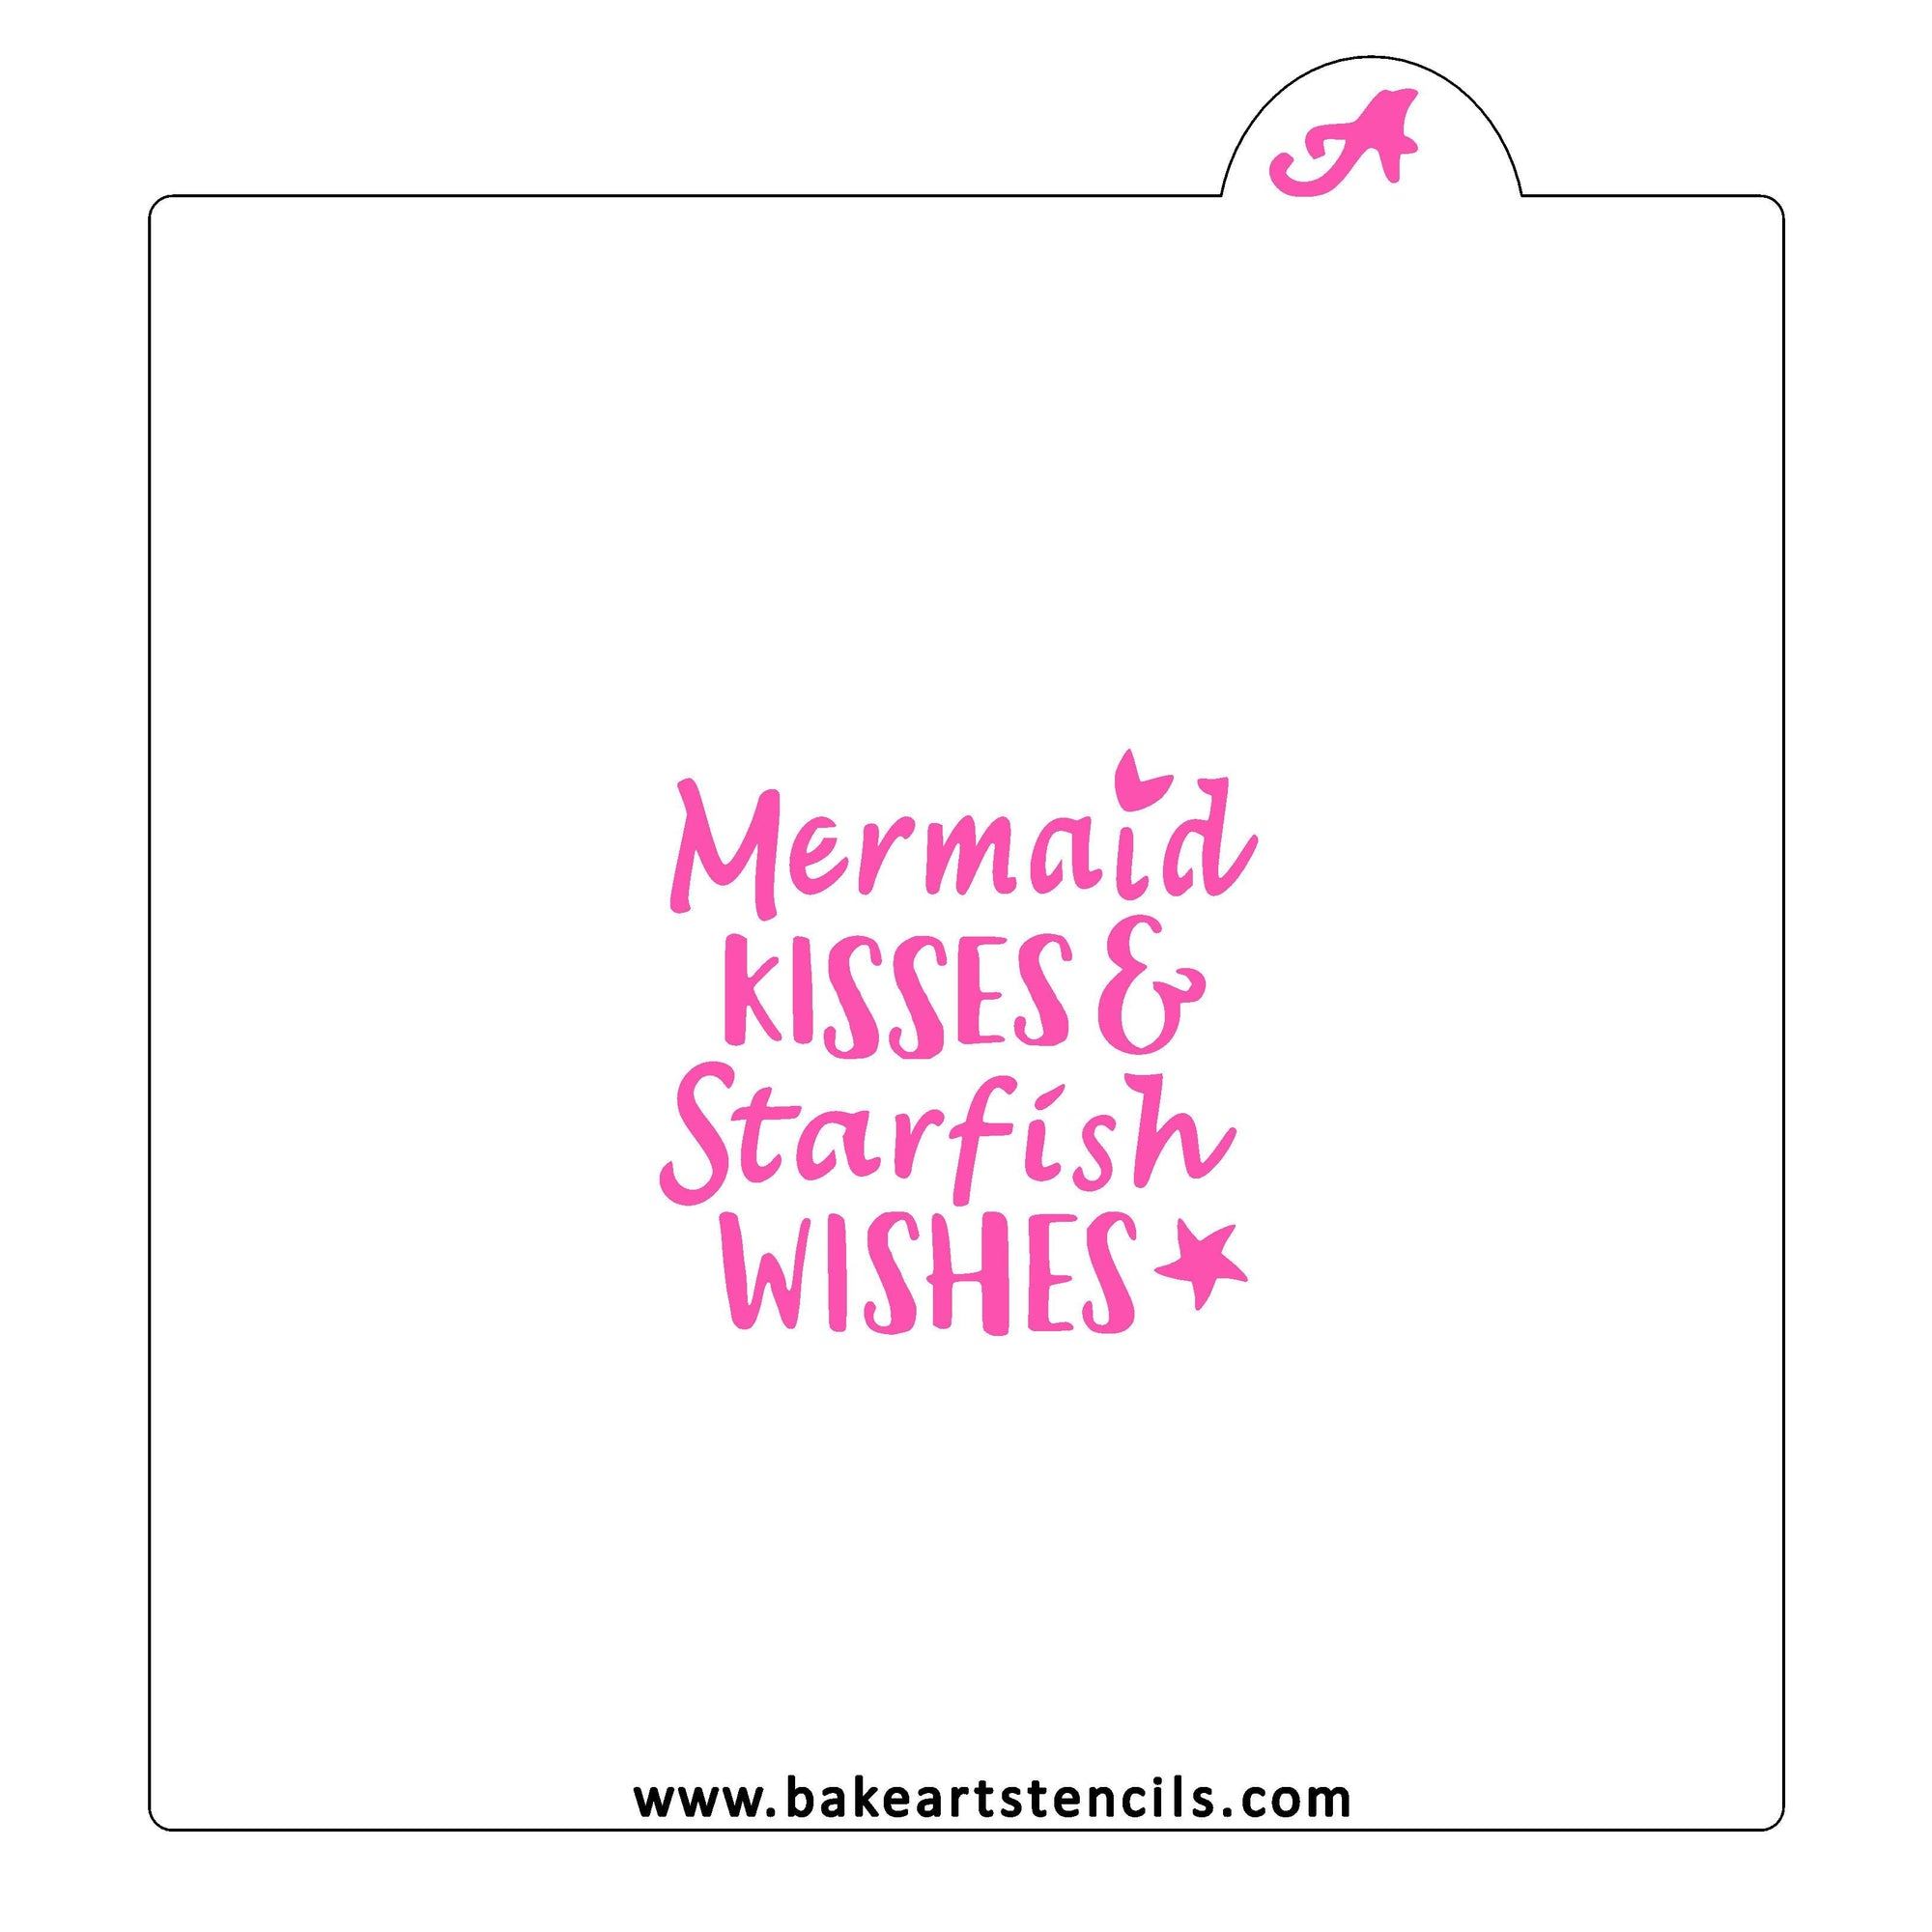 Mermaid Kisses Starfish Wishes Stencil bakeartstencil